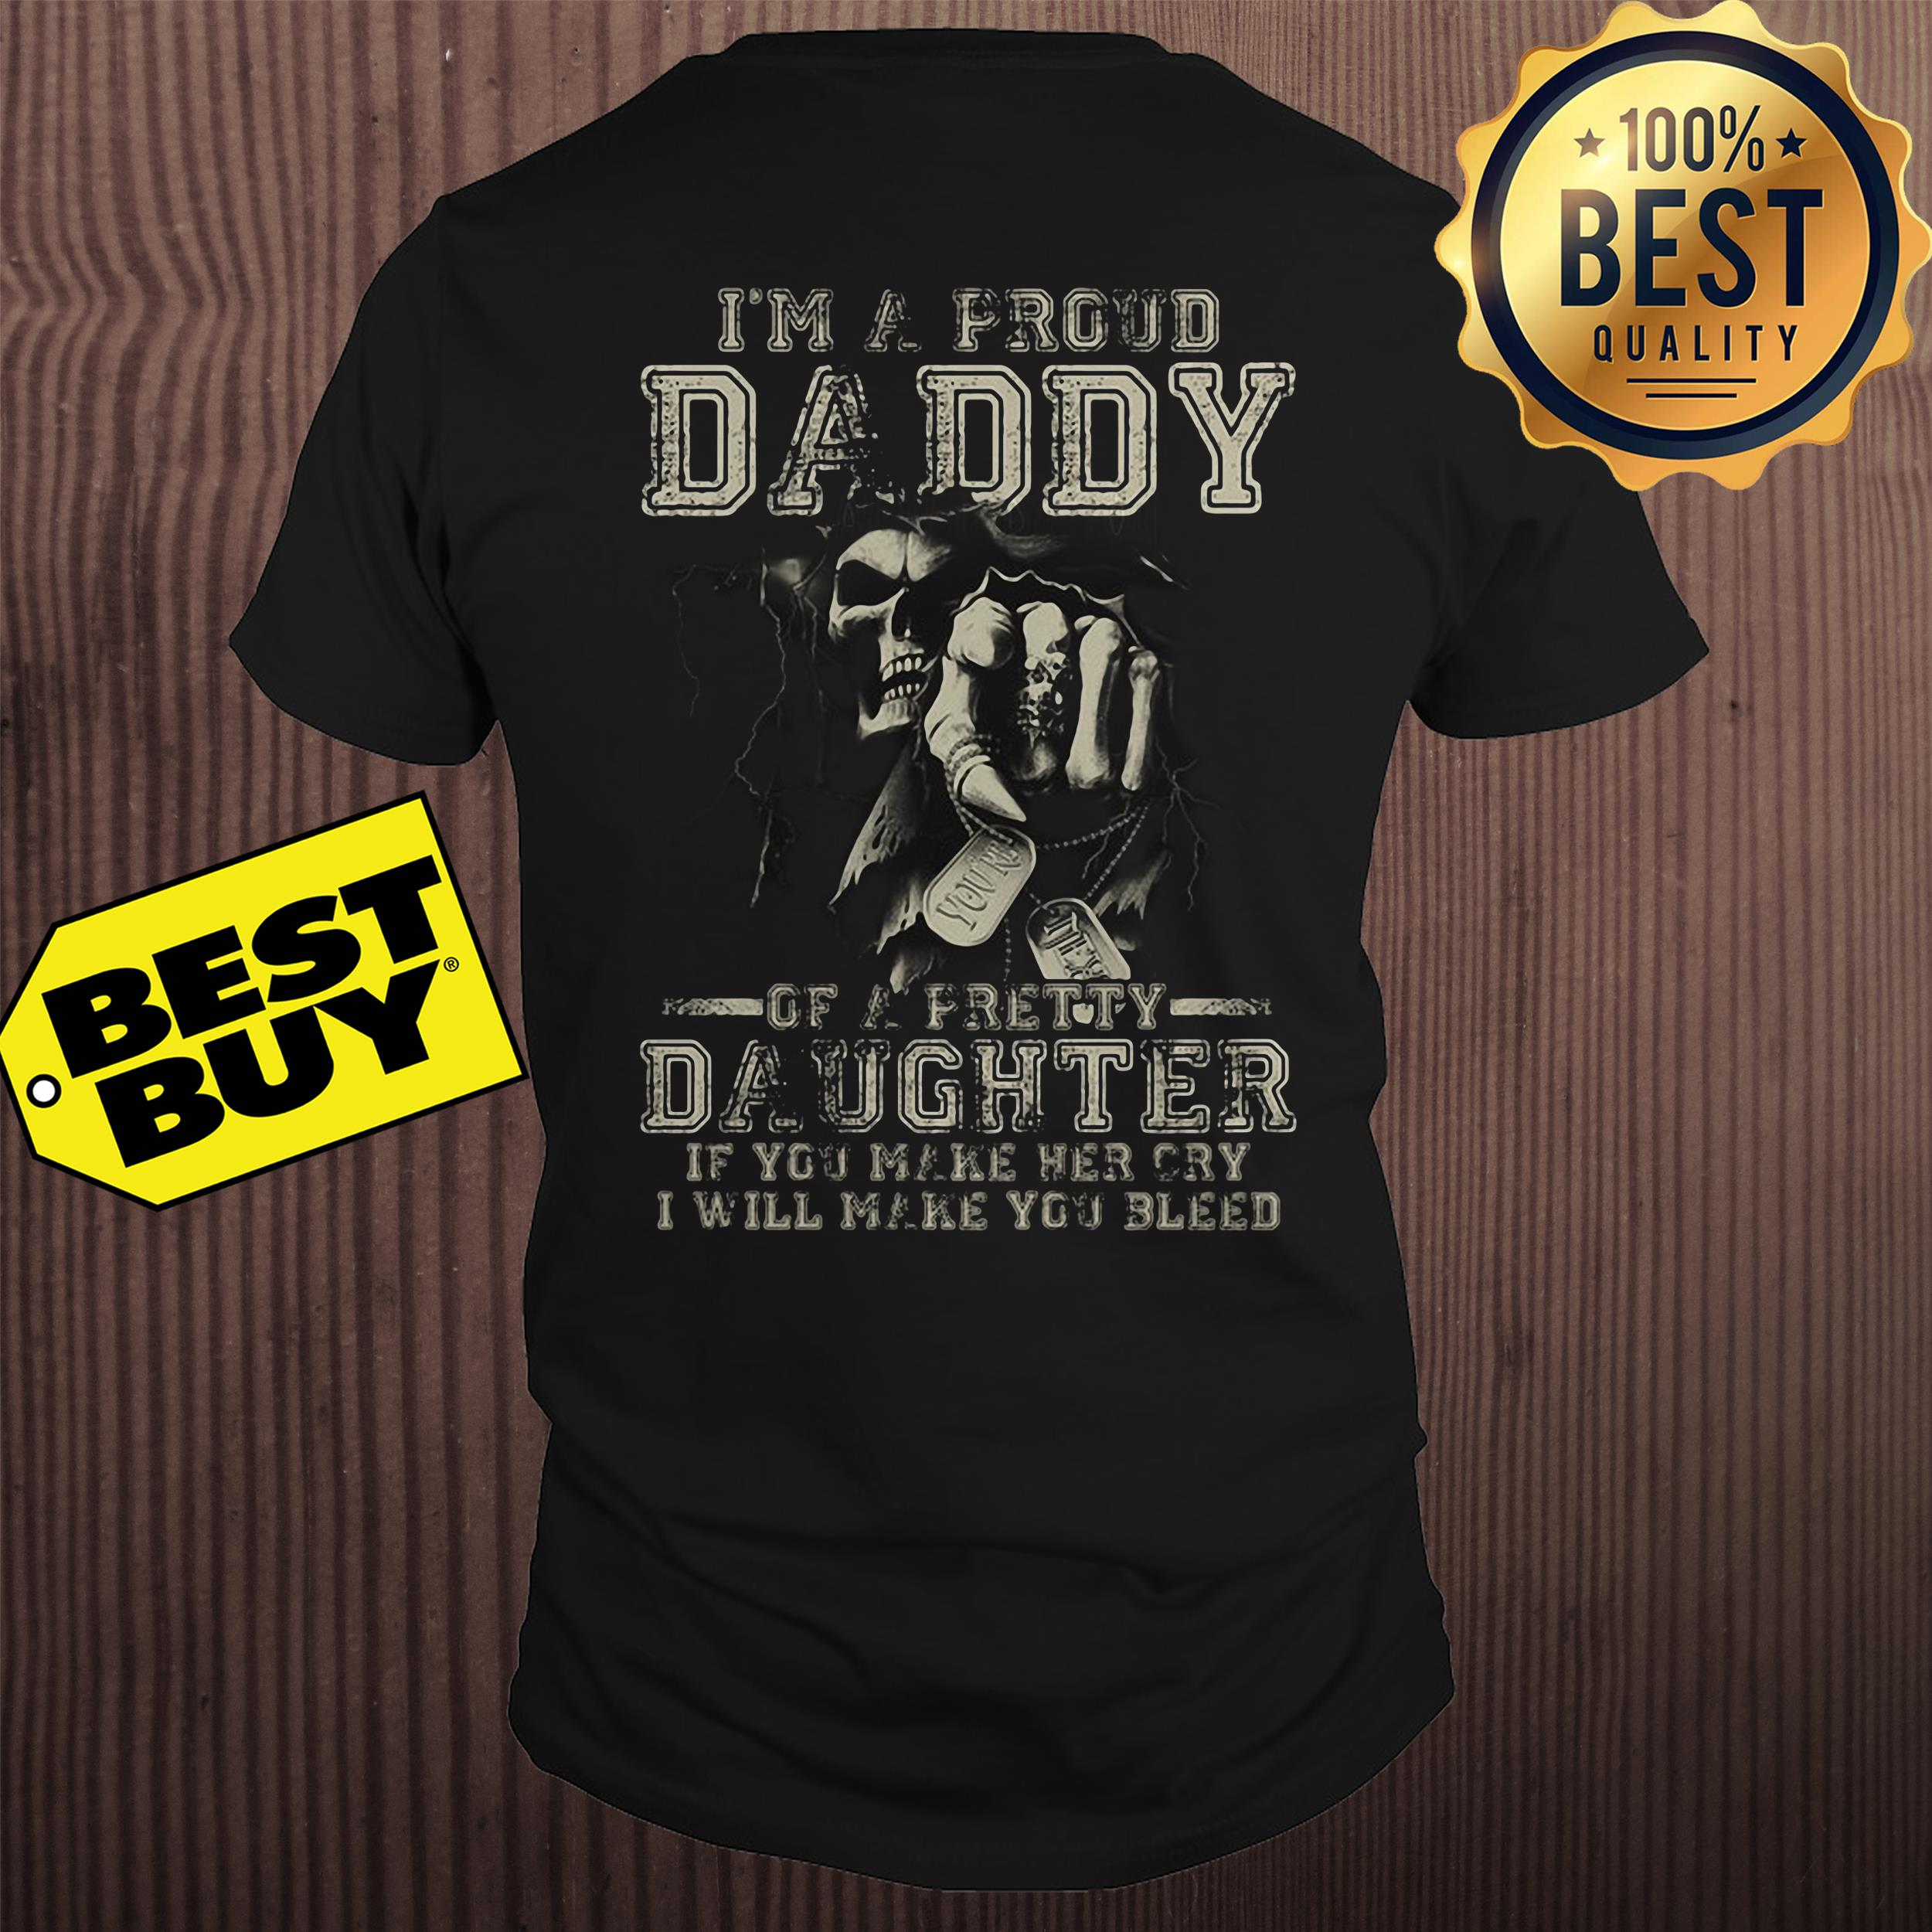 I'm A Proud Daddy Of A Pretty Daughter shirt